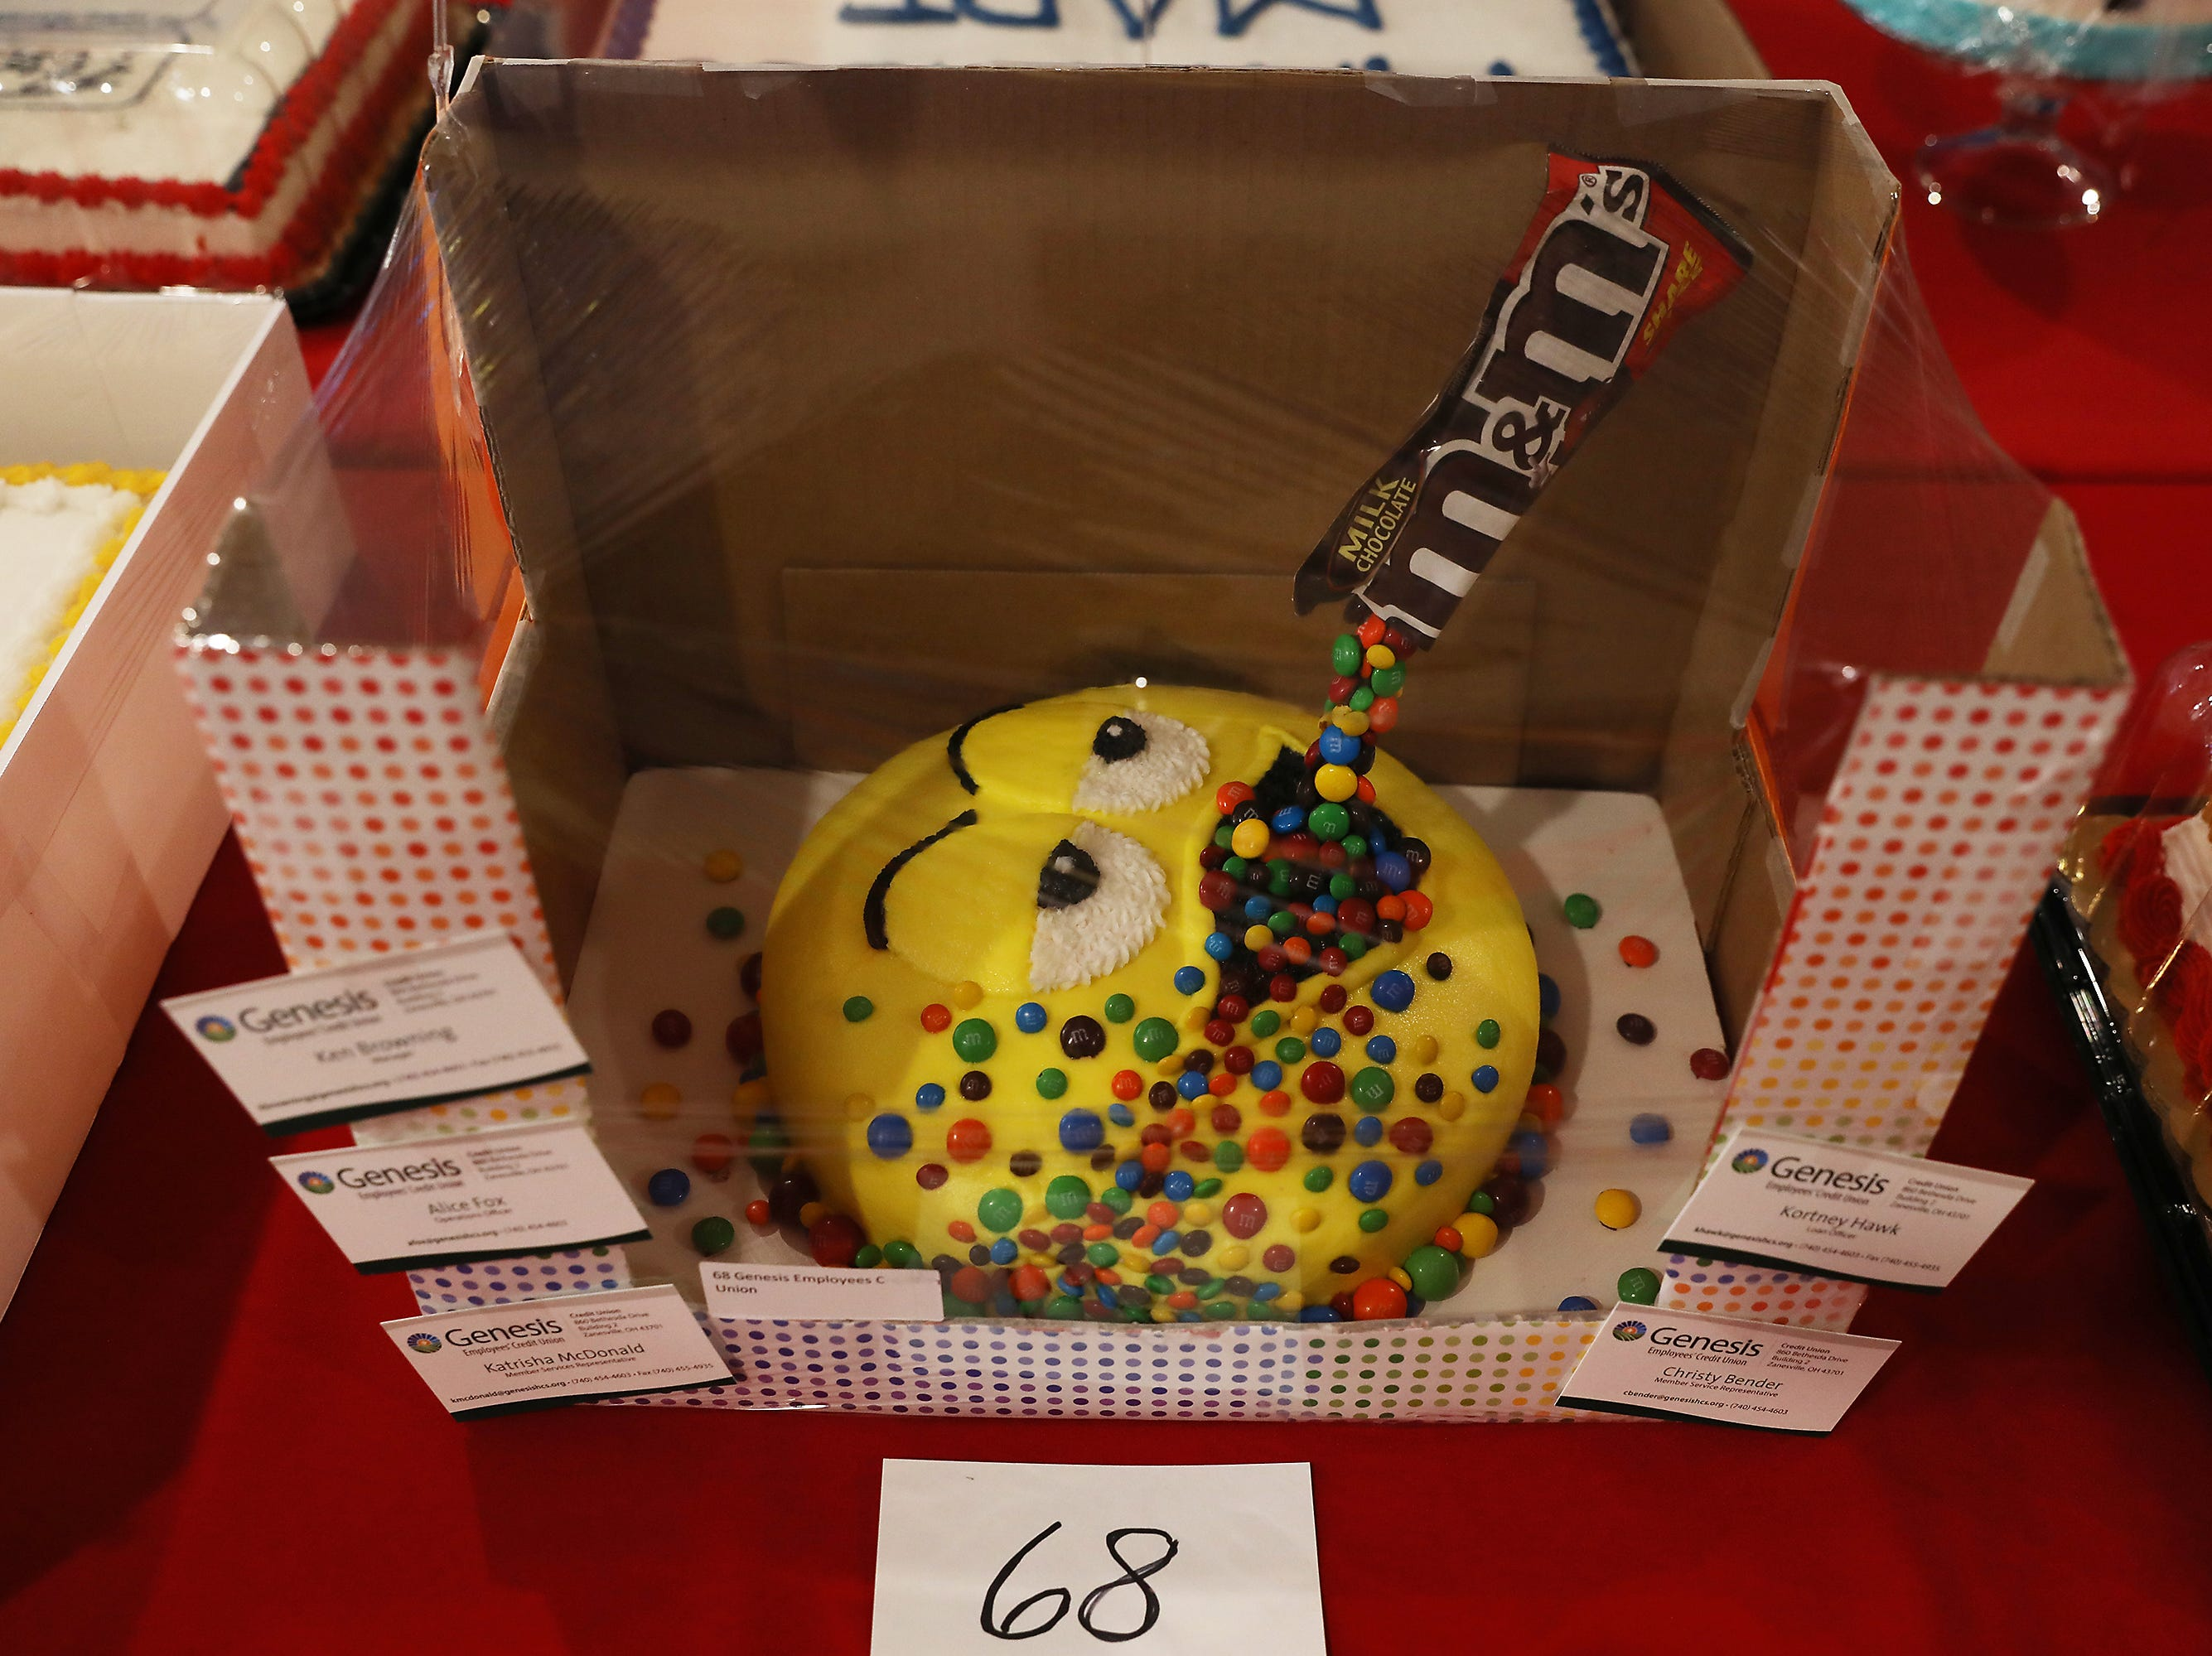 11 A.M. Thursday cake 68 Genesis Employees Credit Union - $30 Walmart gift card, M&M's; $100